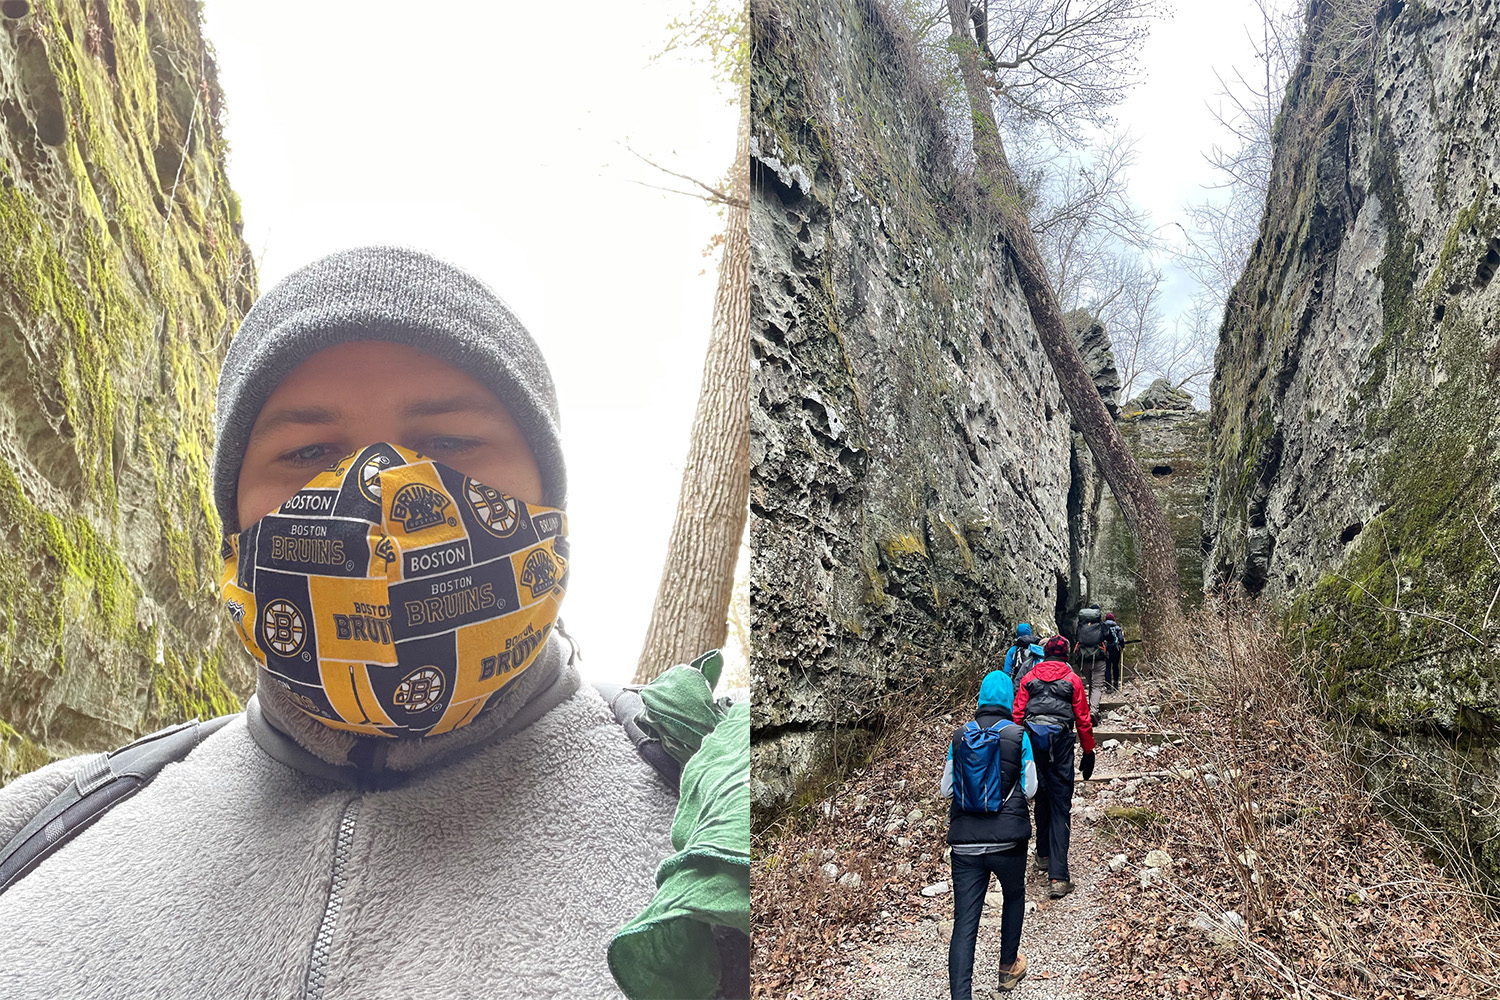 A collage of two pictures including one of Drew Hutchinson wearing a face mask and another of a group of people hiking through a canyon.